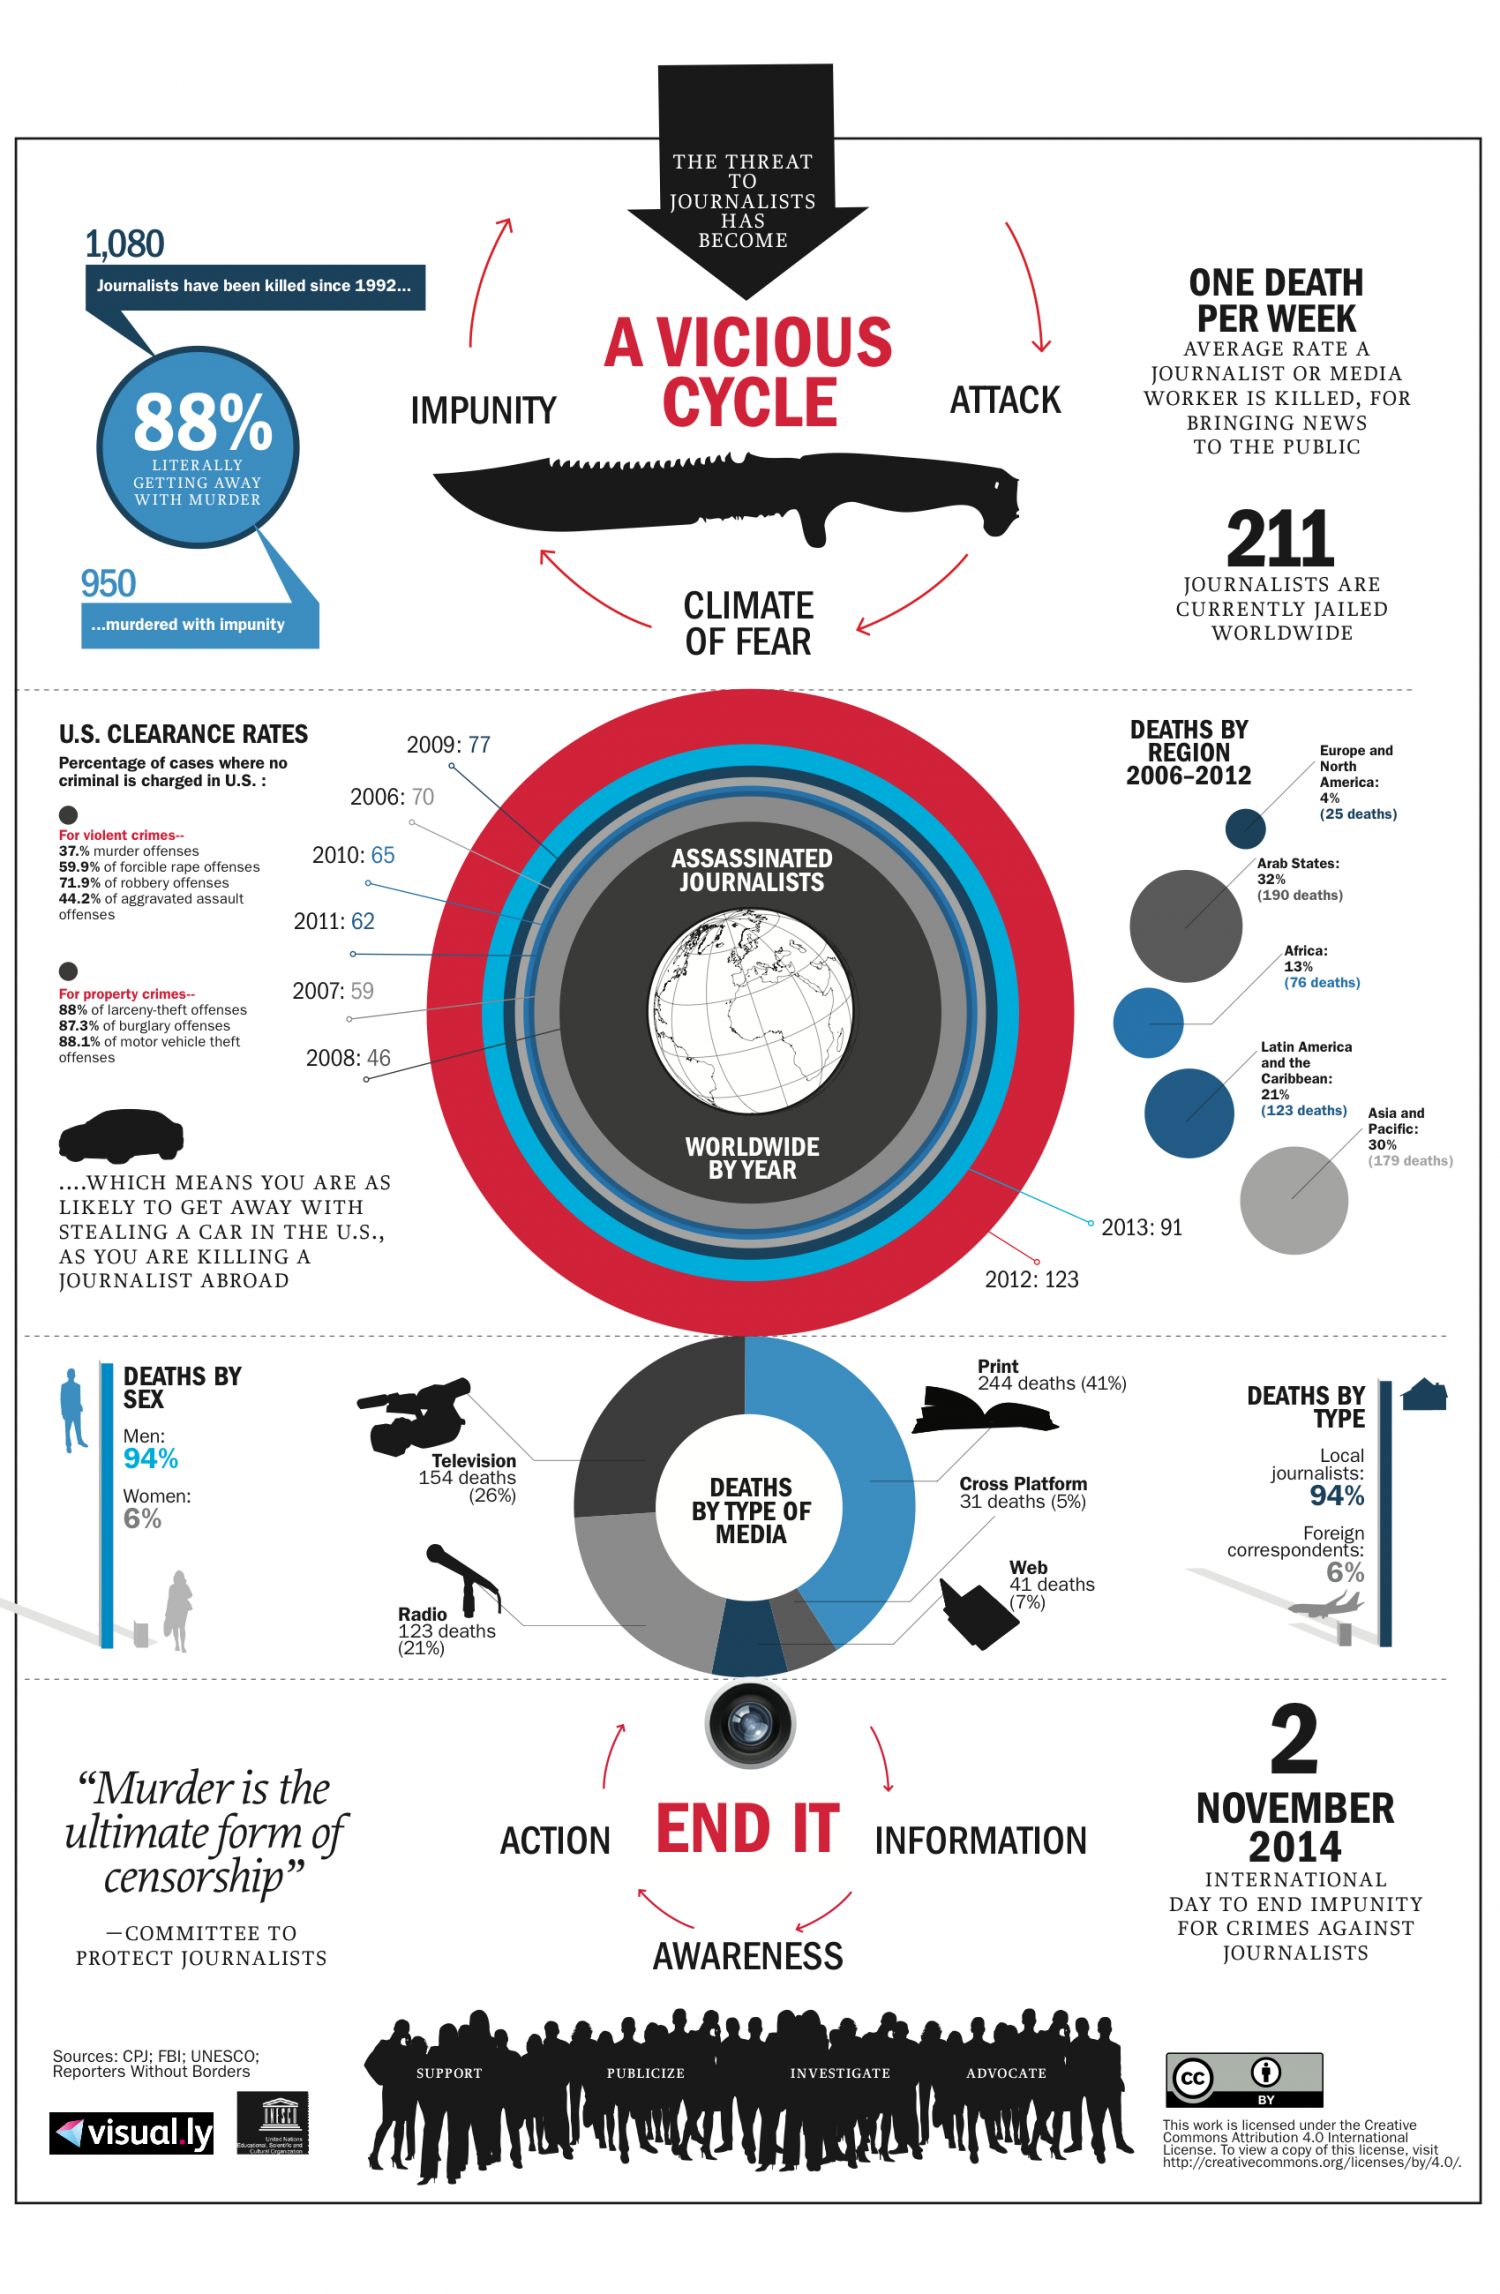 The Threat to Journalists Has Become a Vicious Cycle Infographic